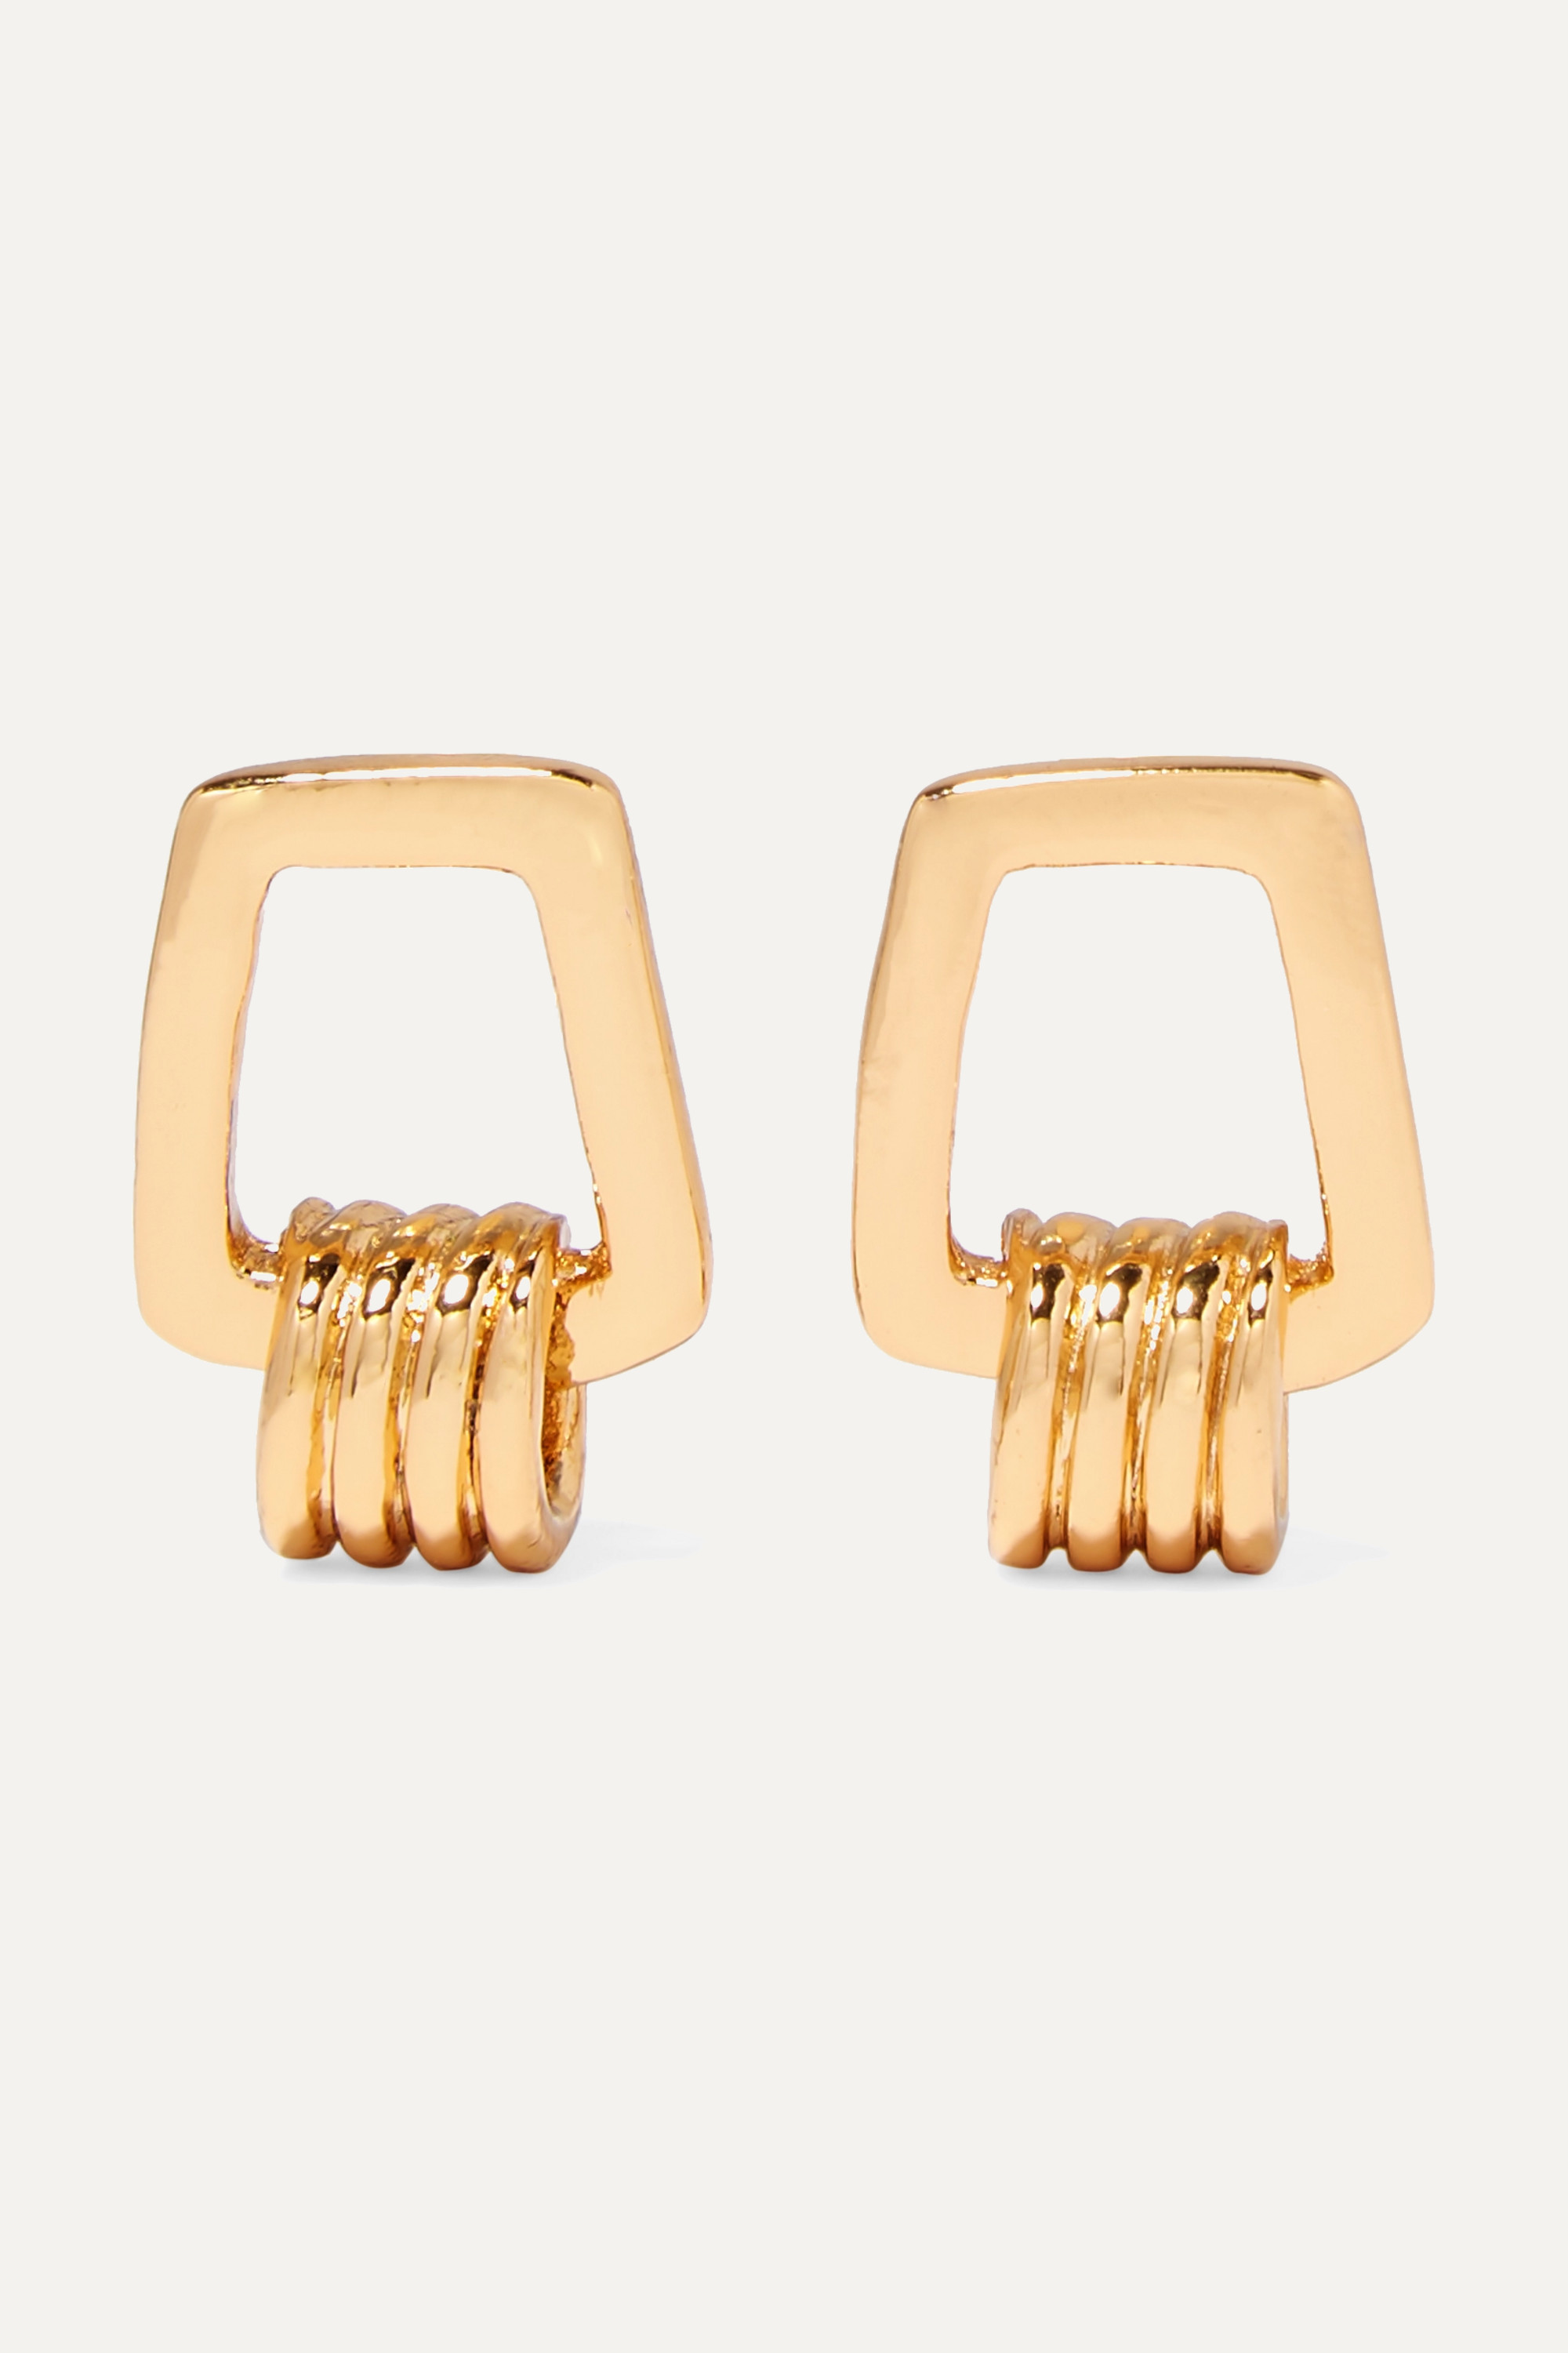 Tohum Dunya Karo gold-plated earrings